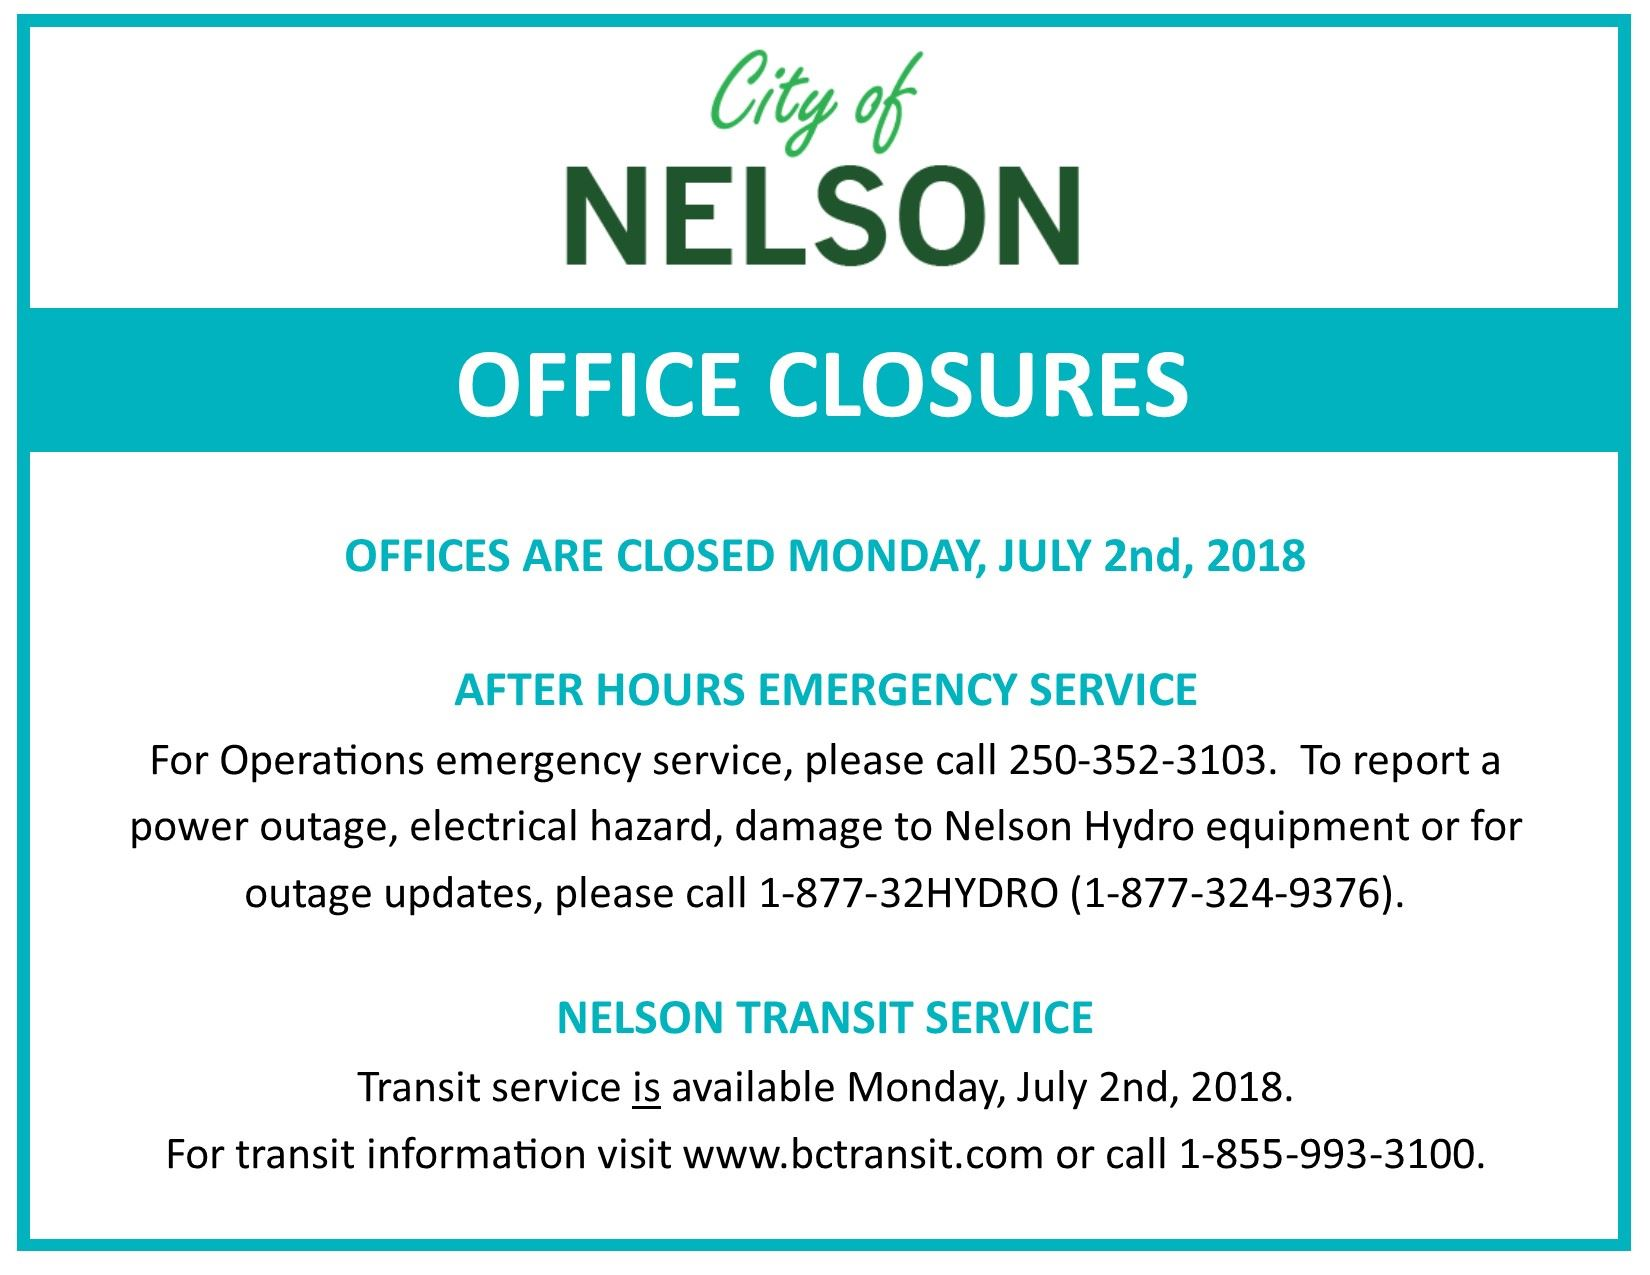 July 1 Office Closures 2018